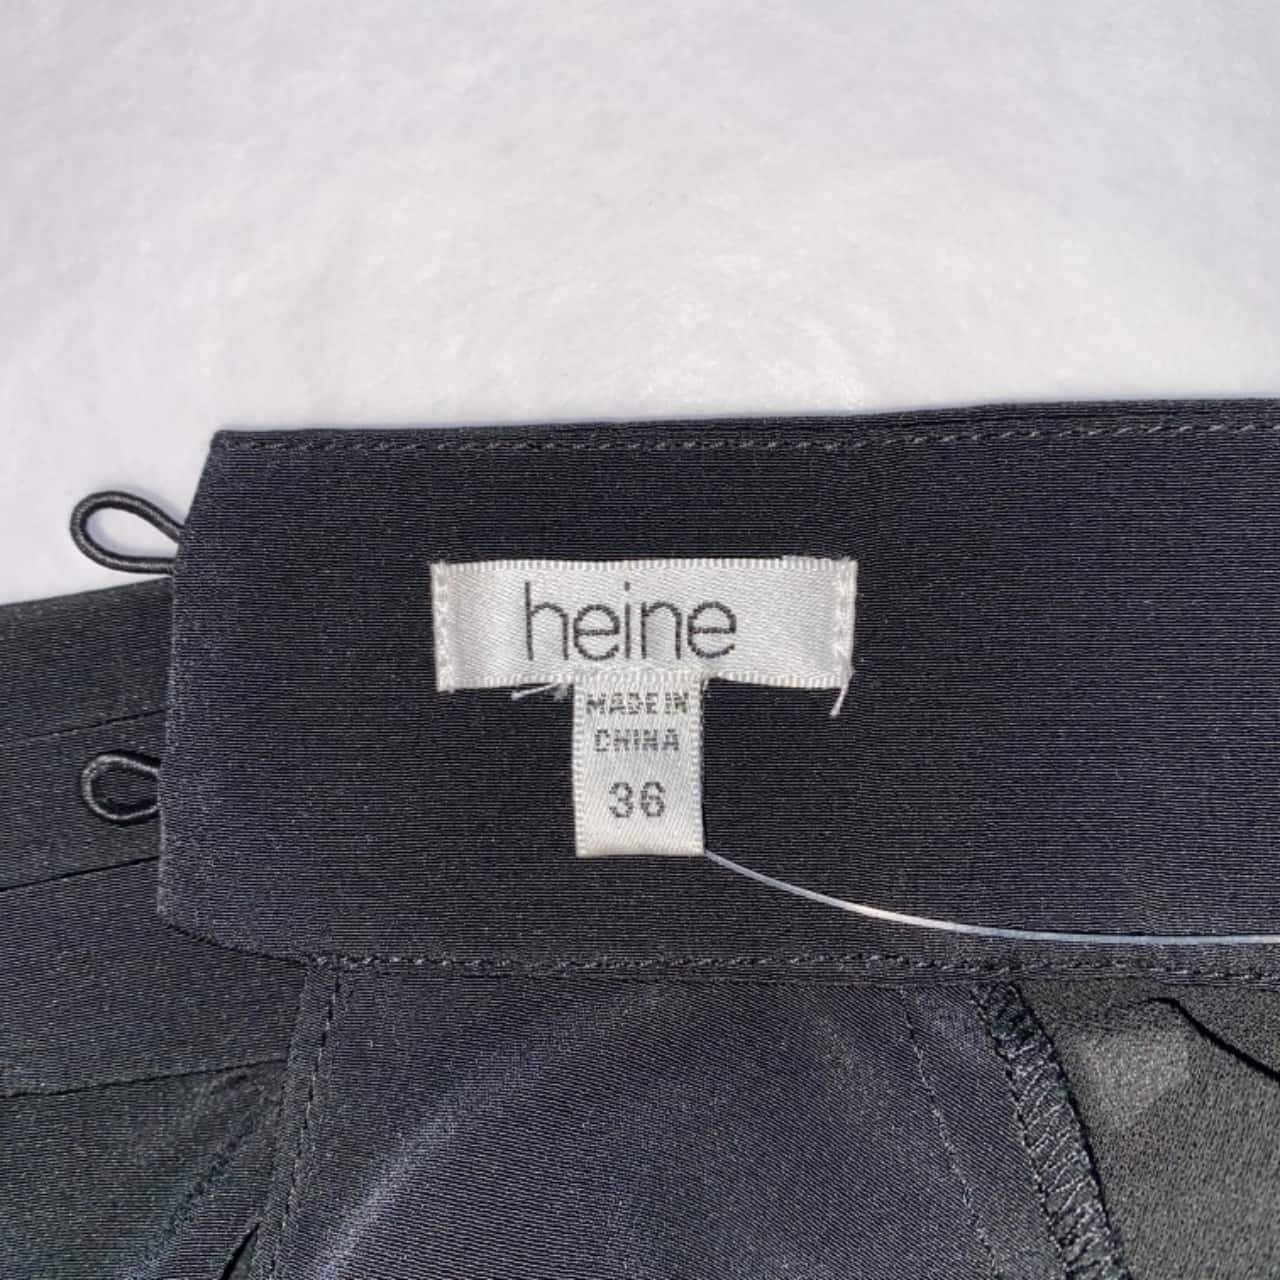 ** REDUCED LAST CHANCE ** Heine Women's Size 36 (Size 8)Black Long Sleeve Top - New With Tags